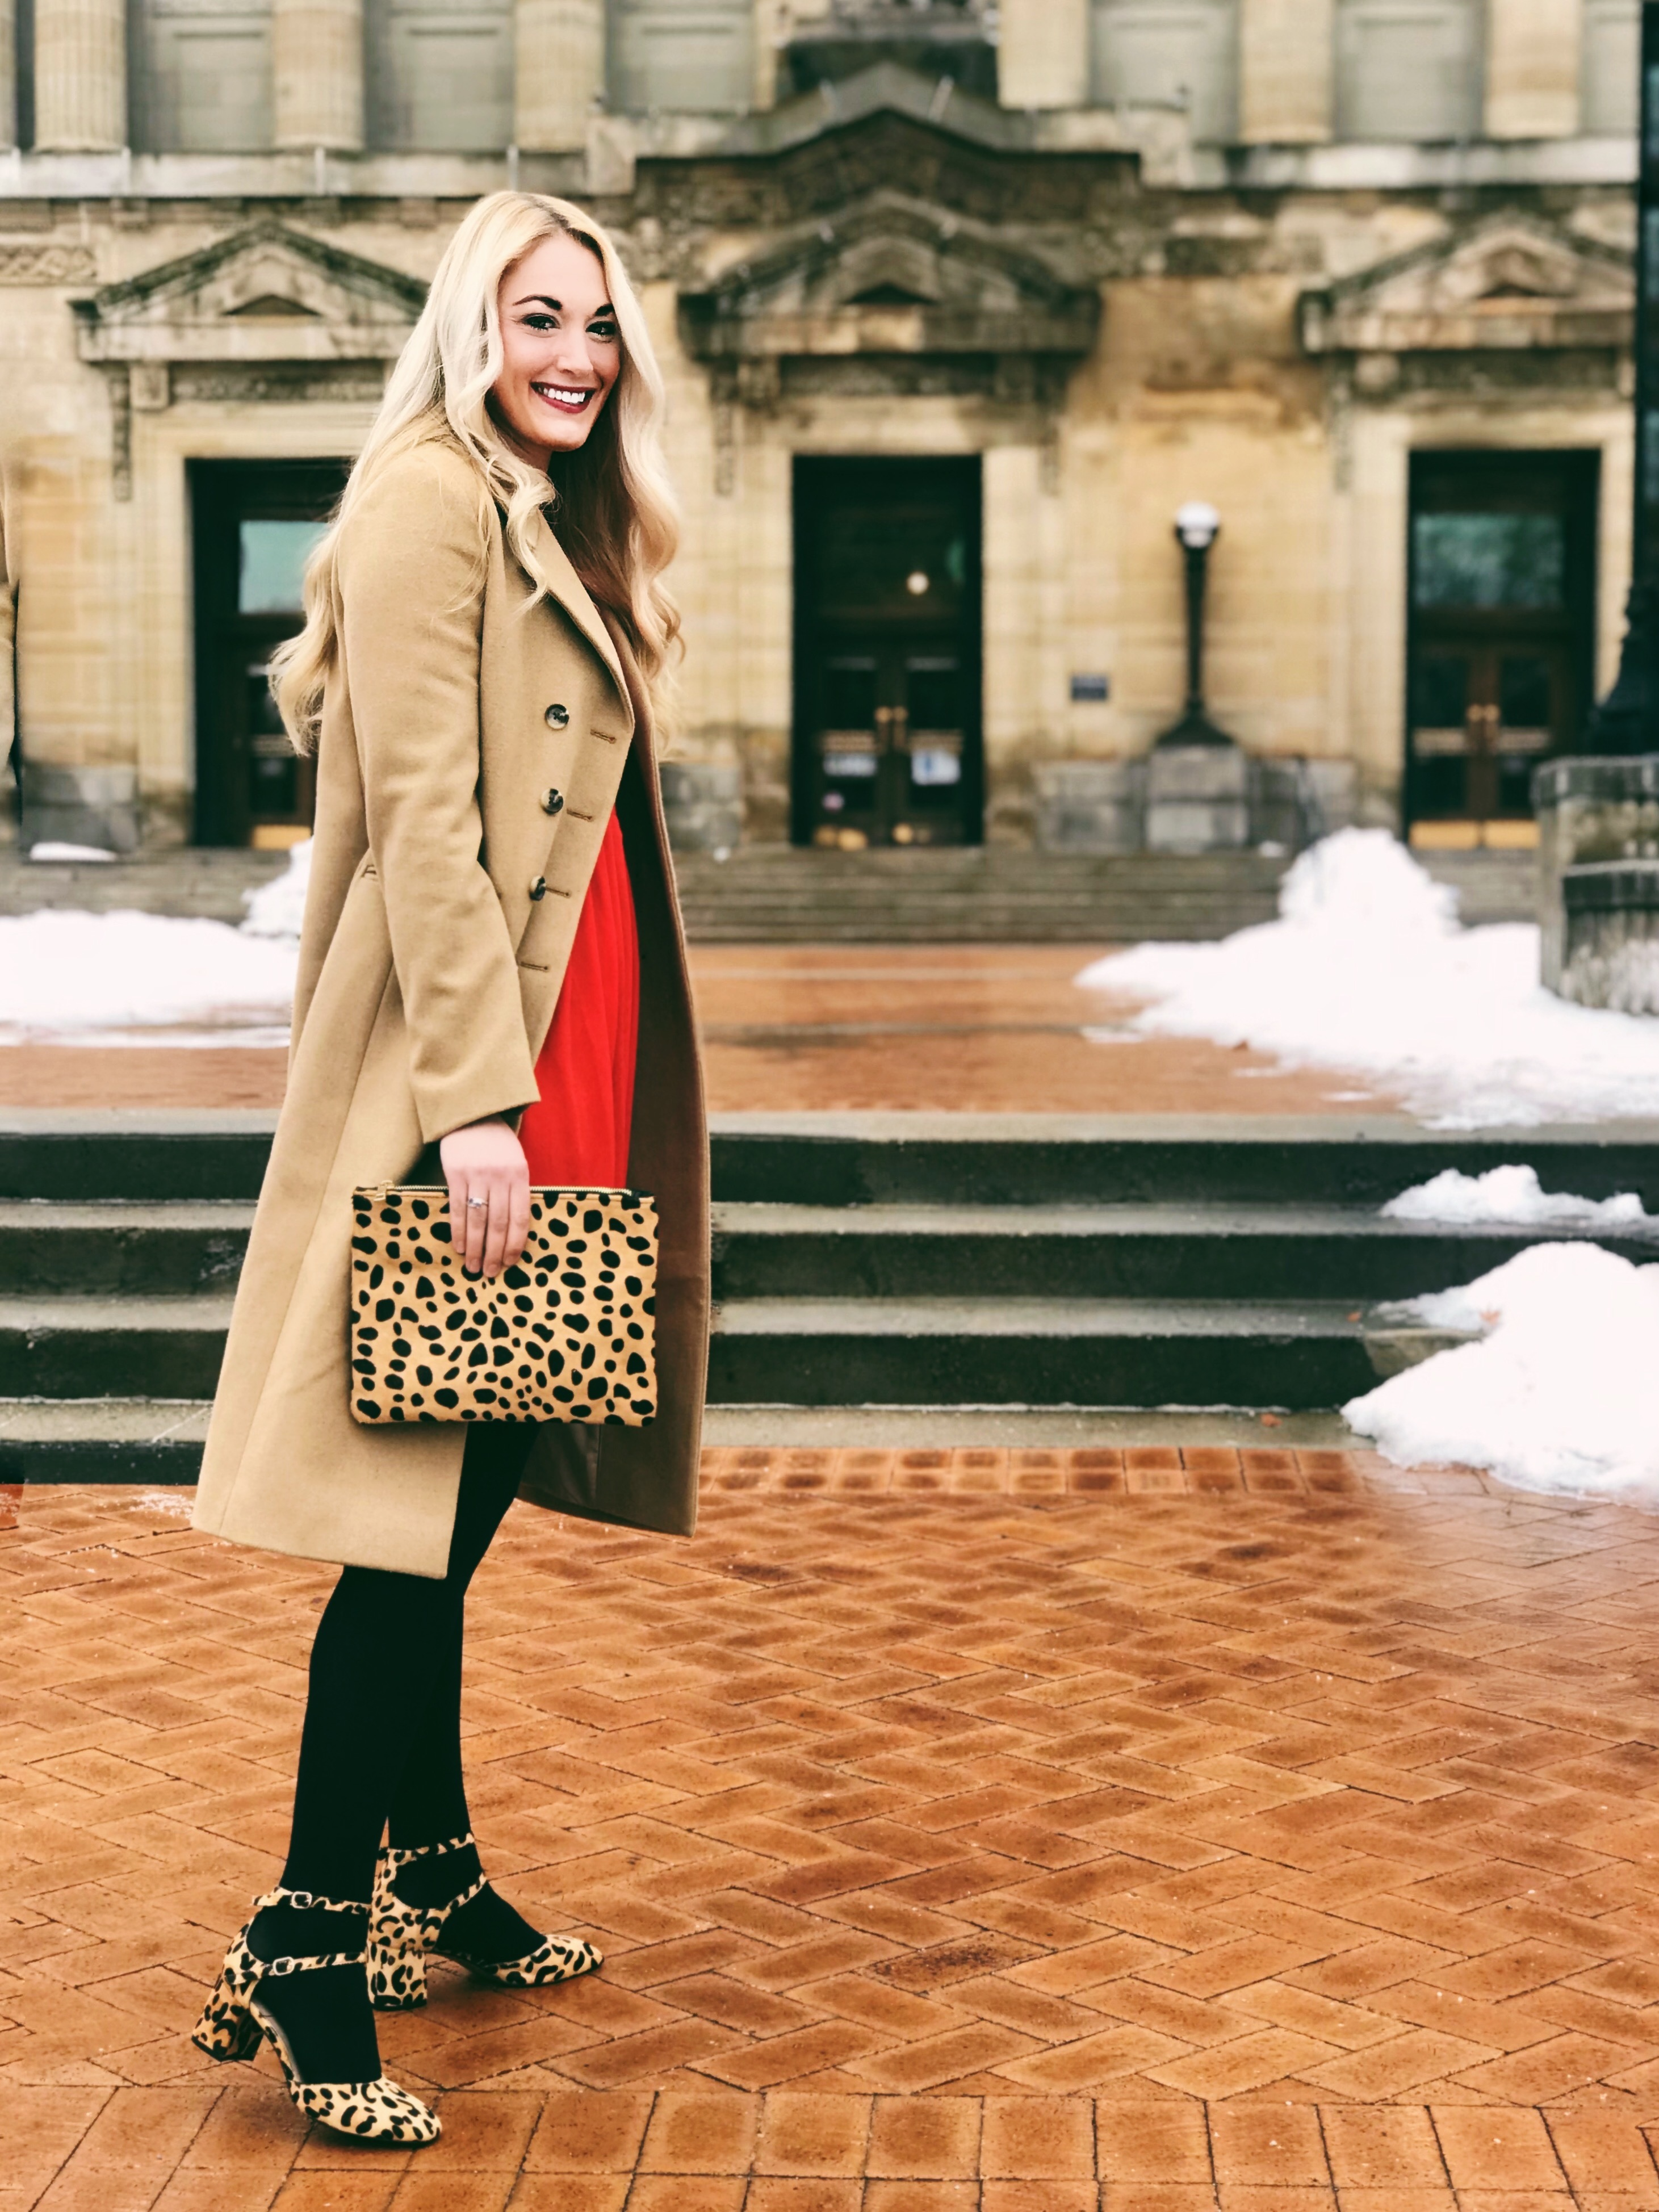 How to Wear Leopard Print | www.styleherstrong.com | #fashion #style #leopardprint #classicstyle #preppy